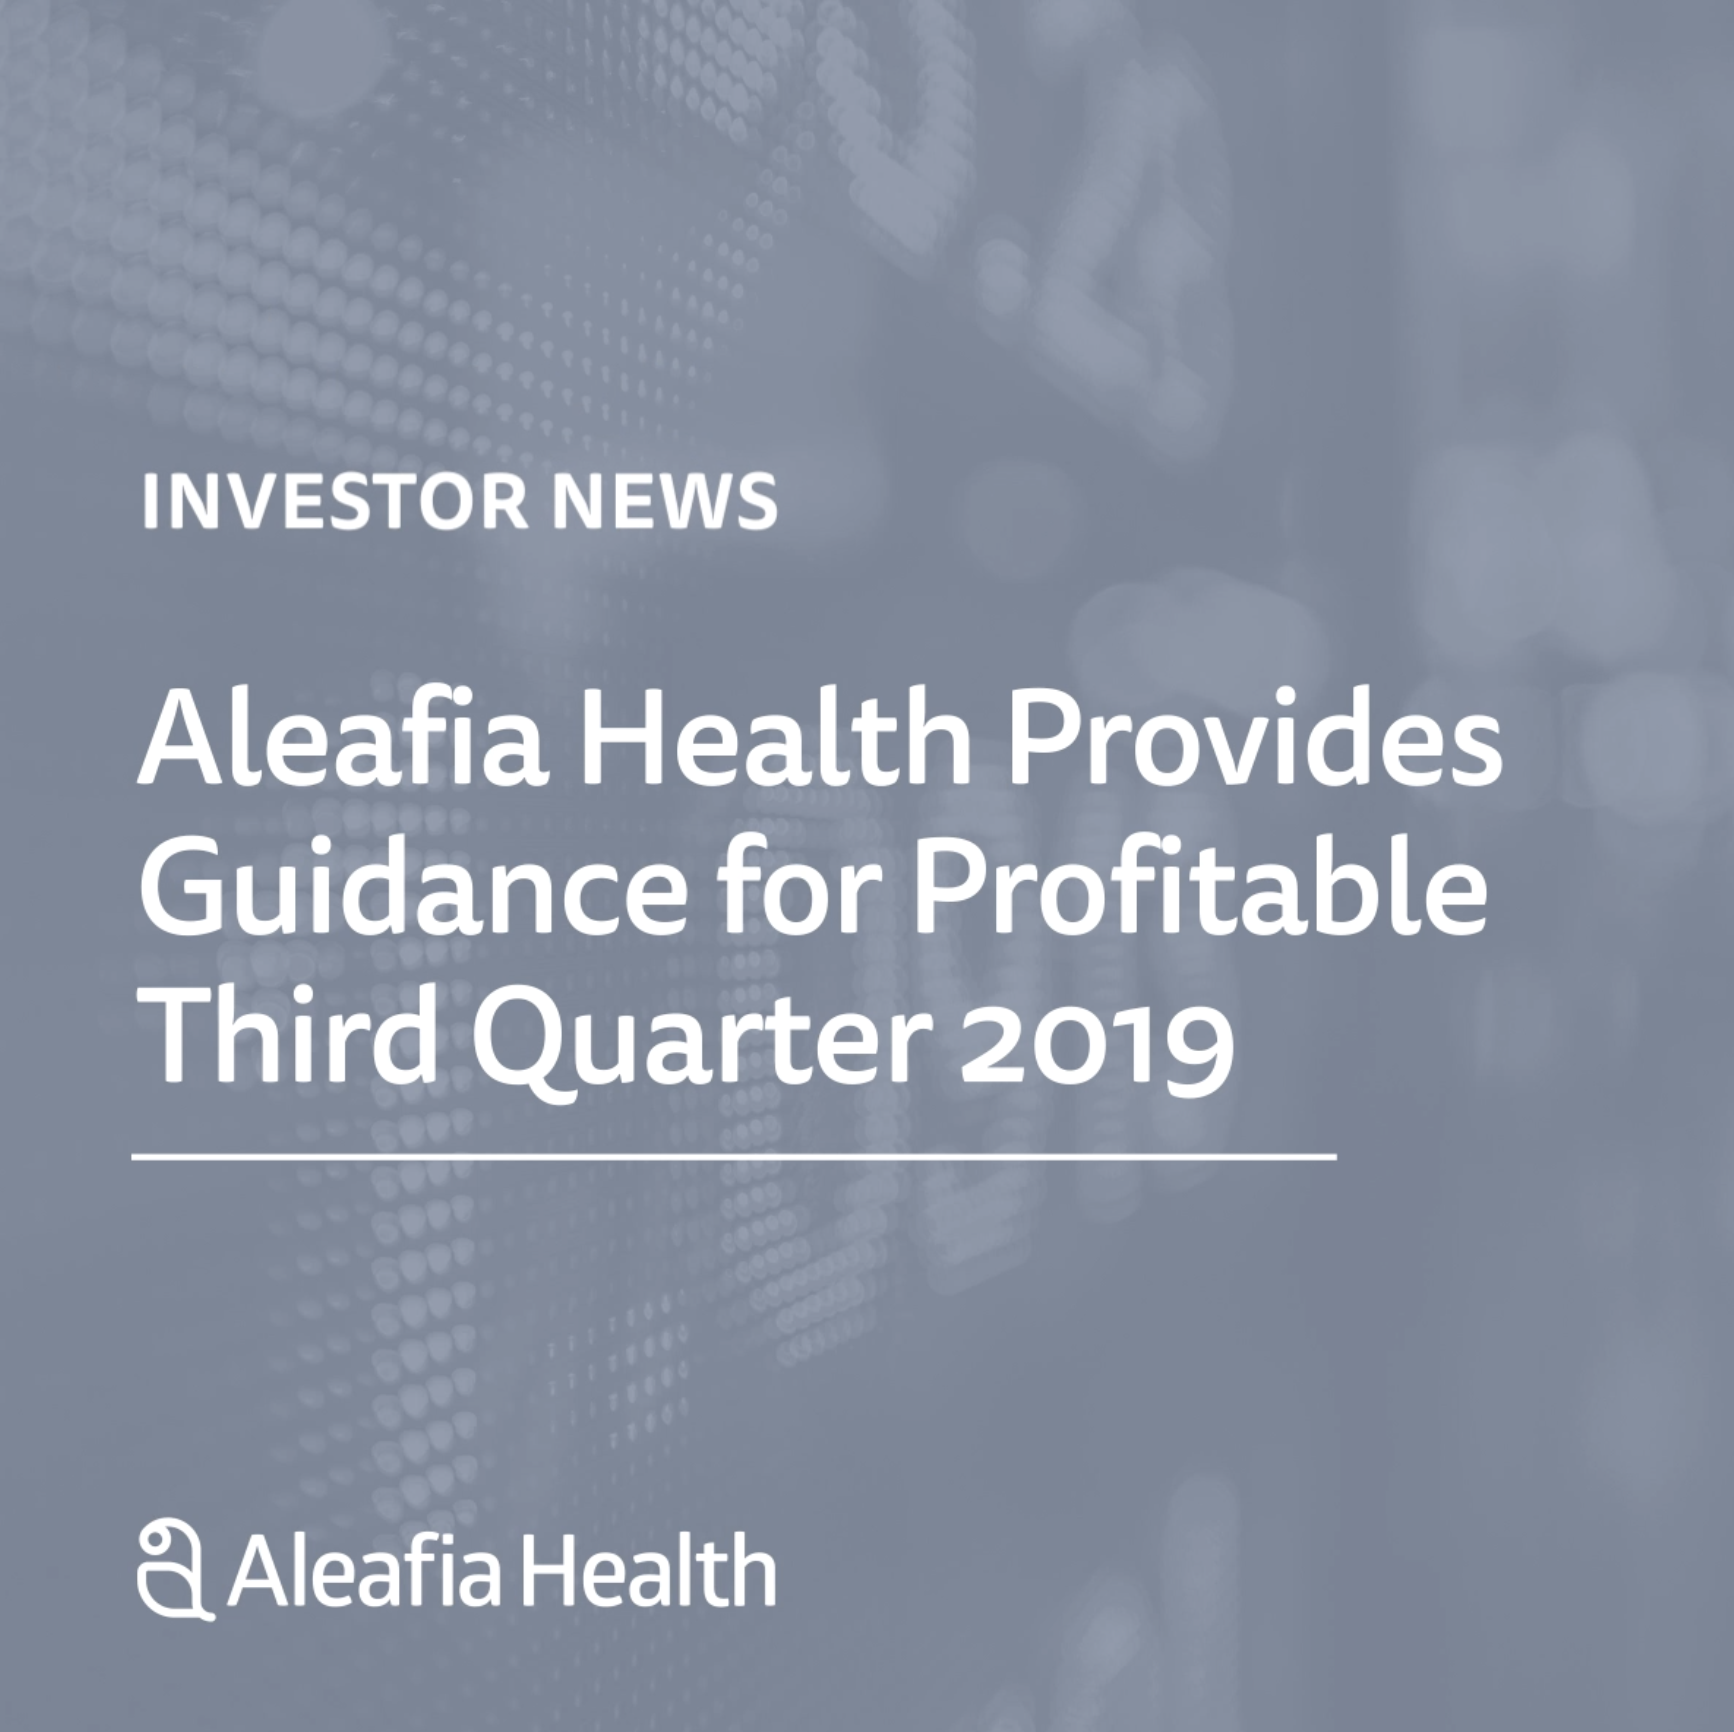 Aleafia Health Provides Guidance for Profitable Third Quarter 2019